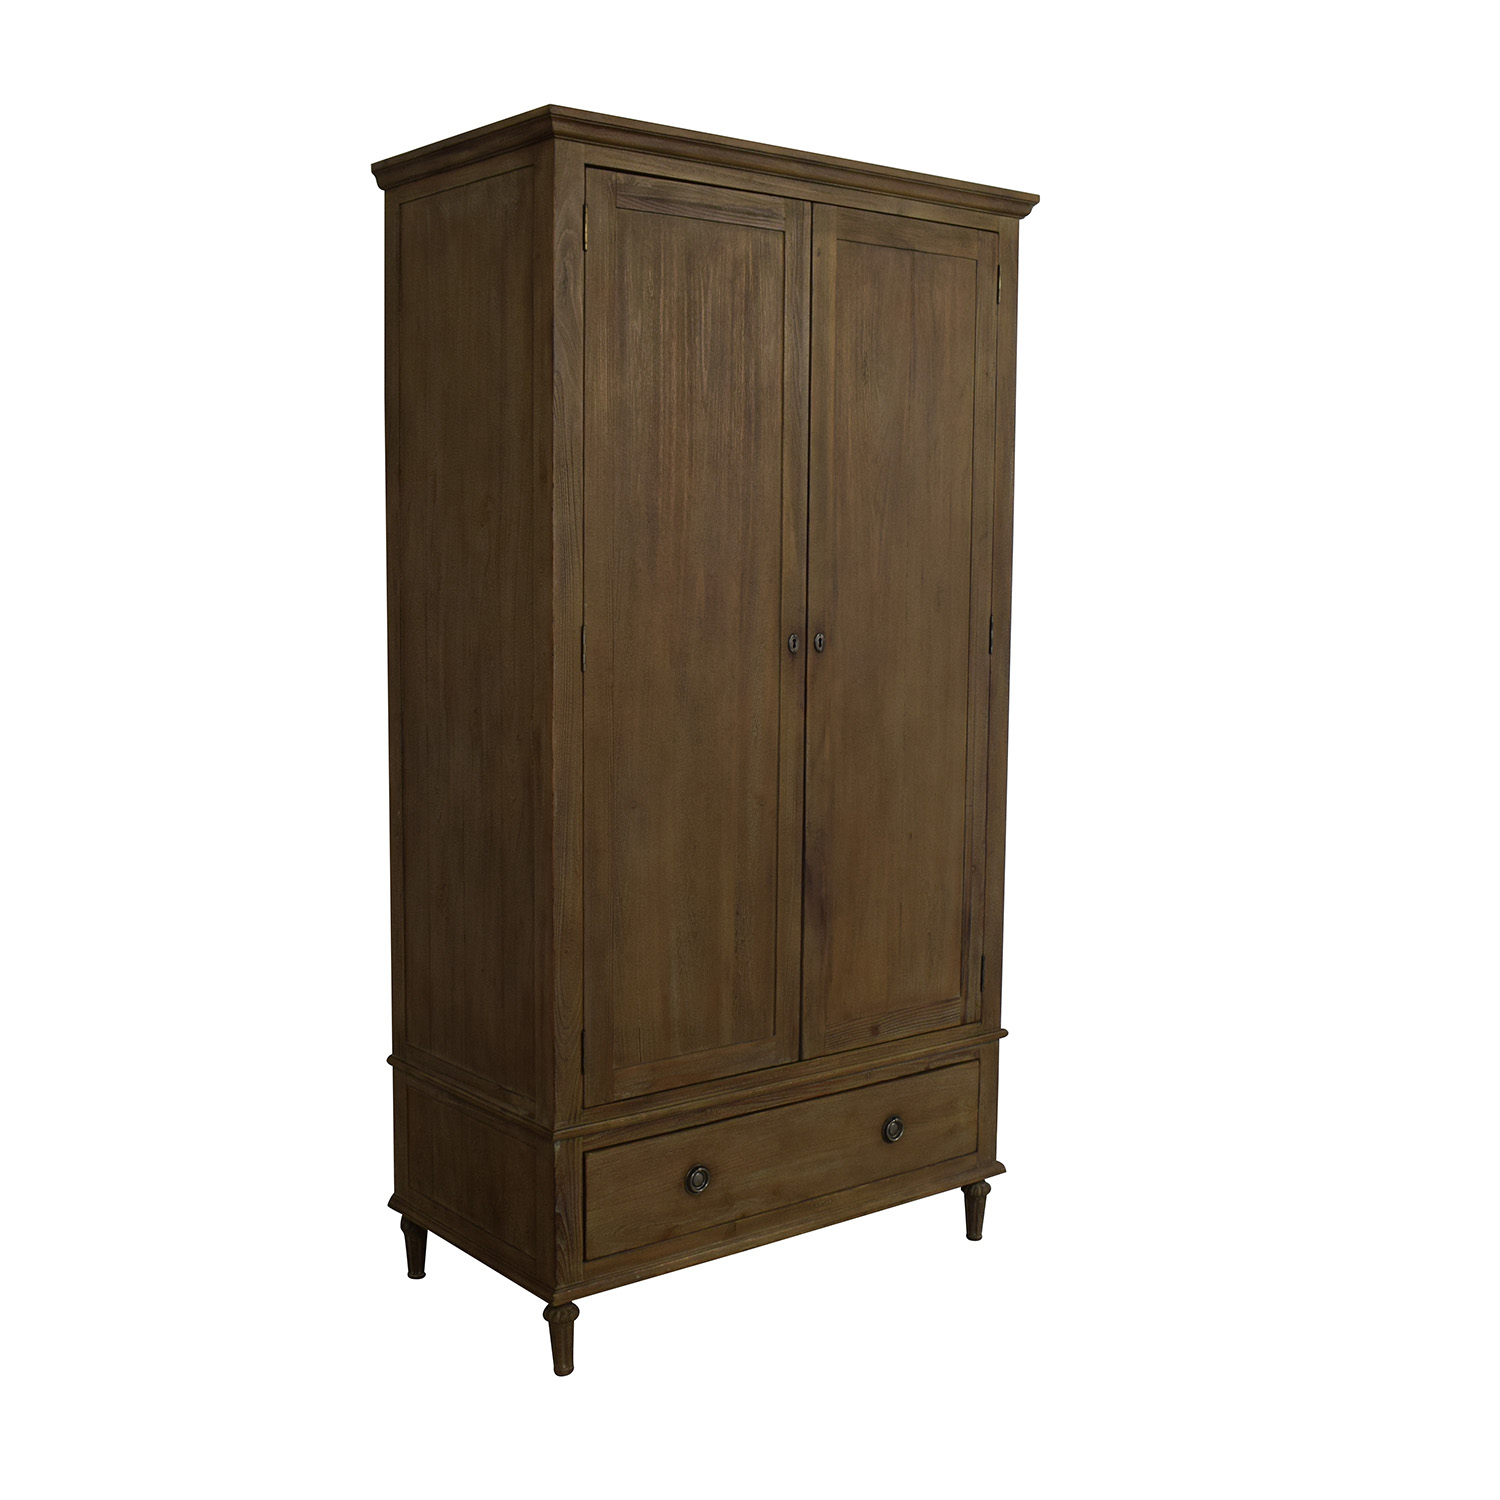 buy Restoration Hardware Restoration Hardware Maison Armoire online